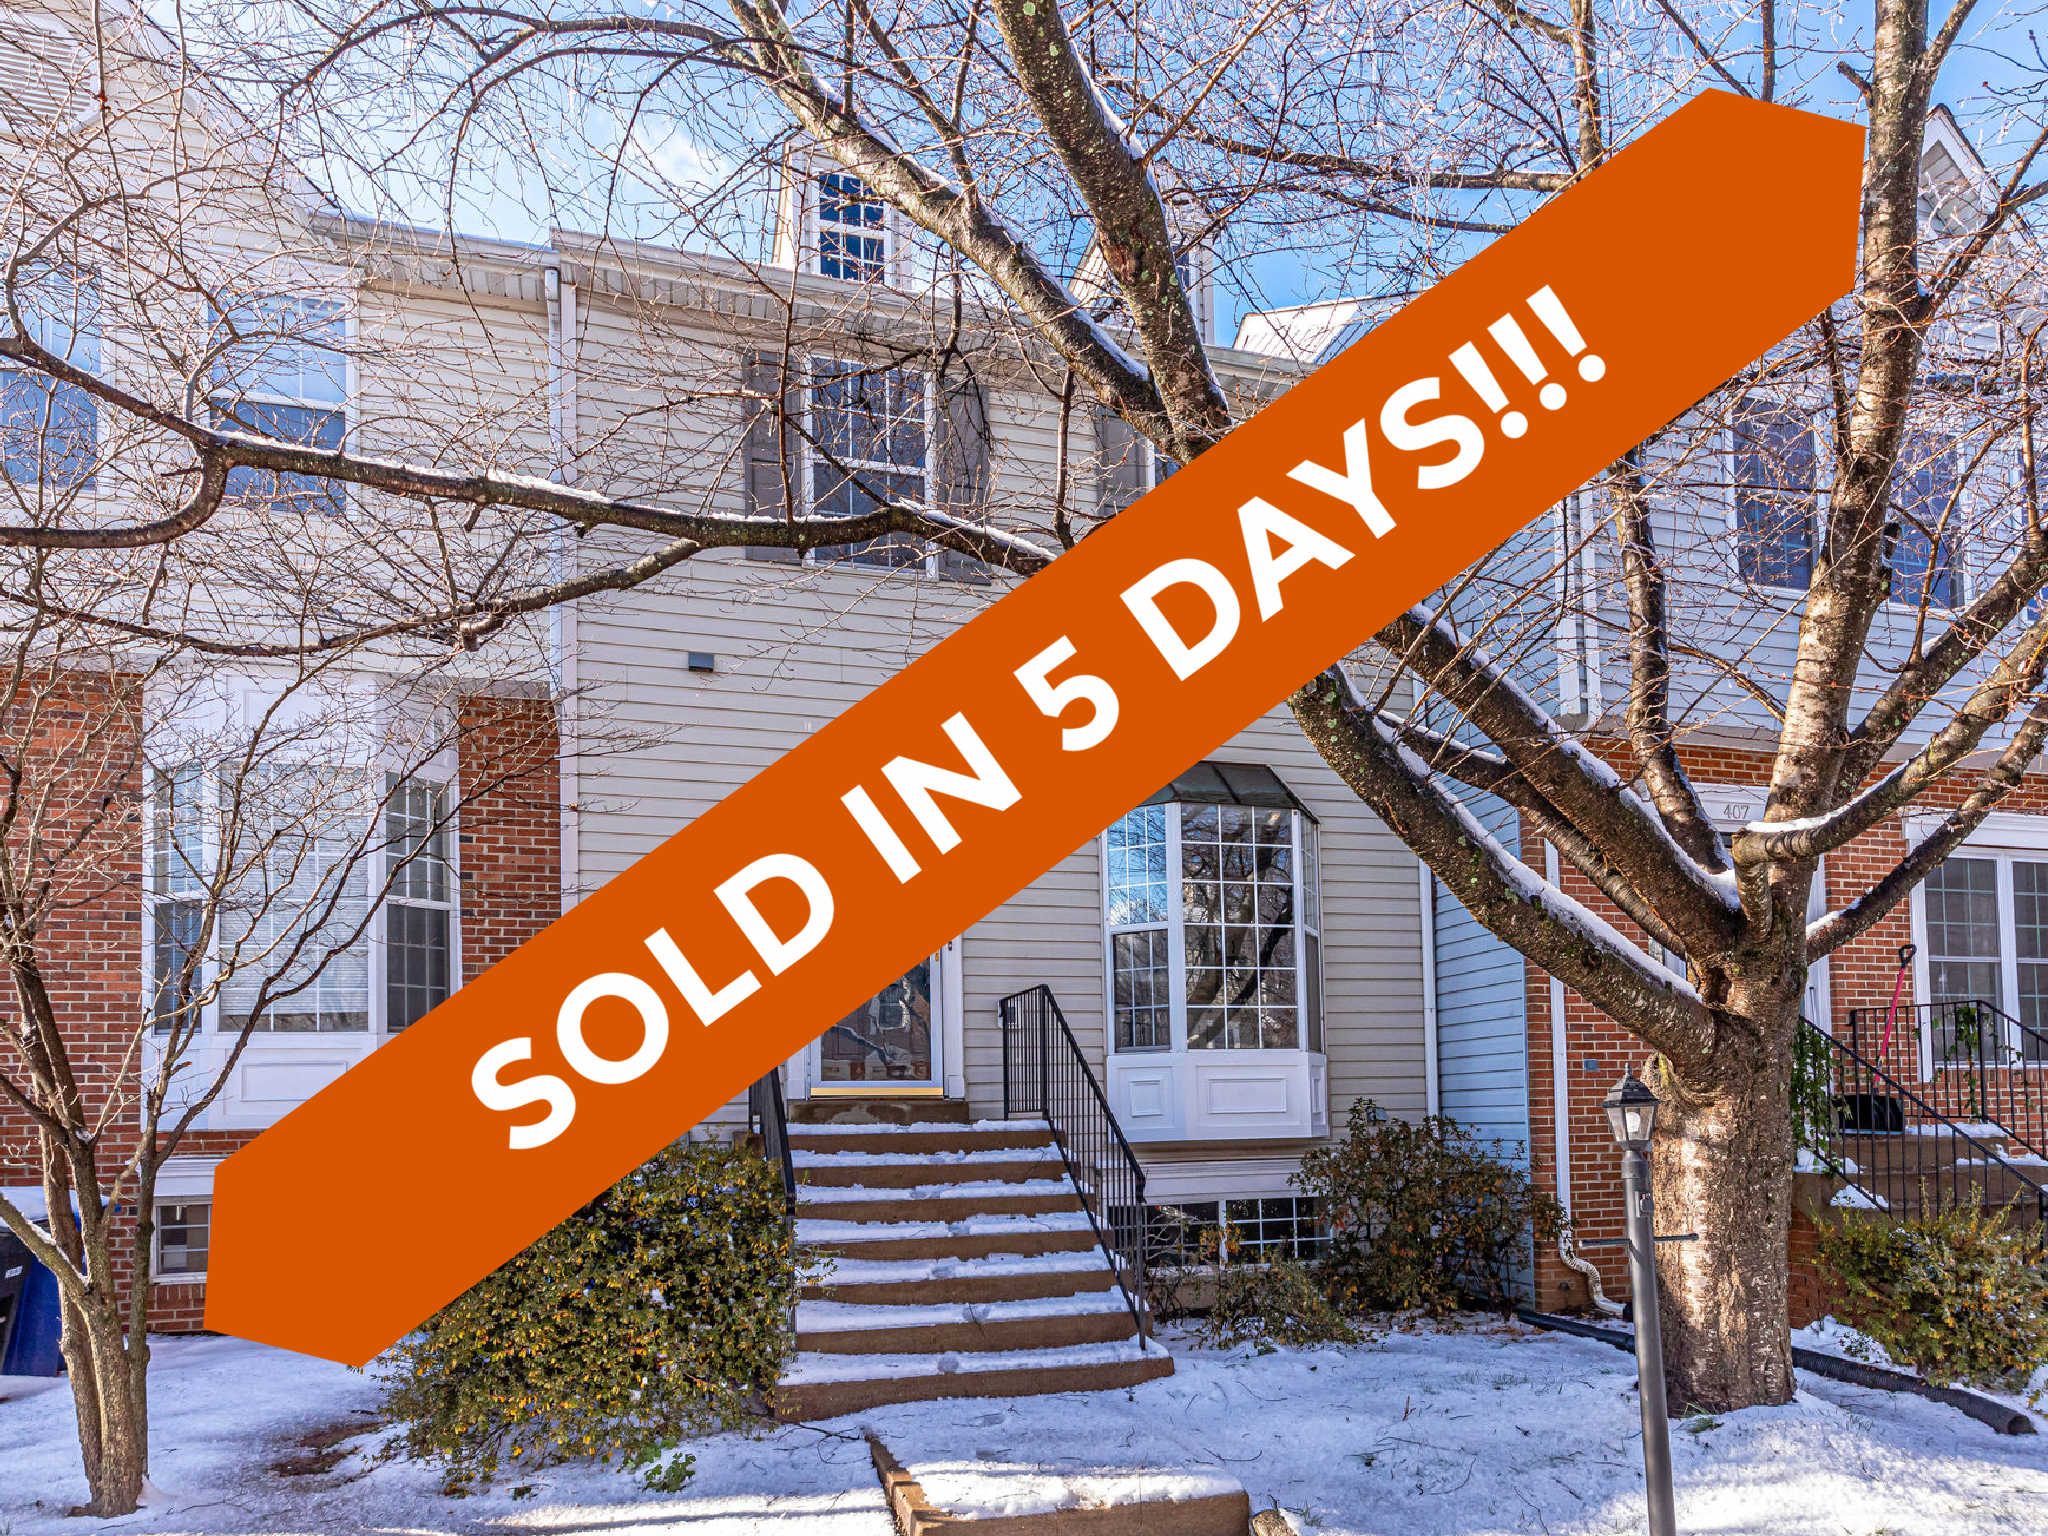 405 Breckinridge Sq SE, Leesburg- Sold